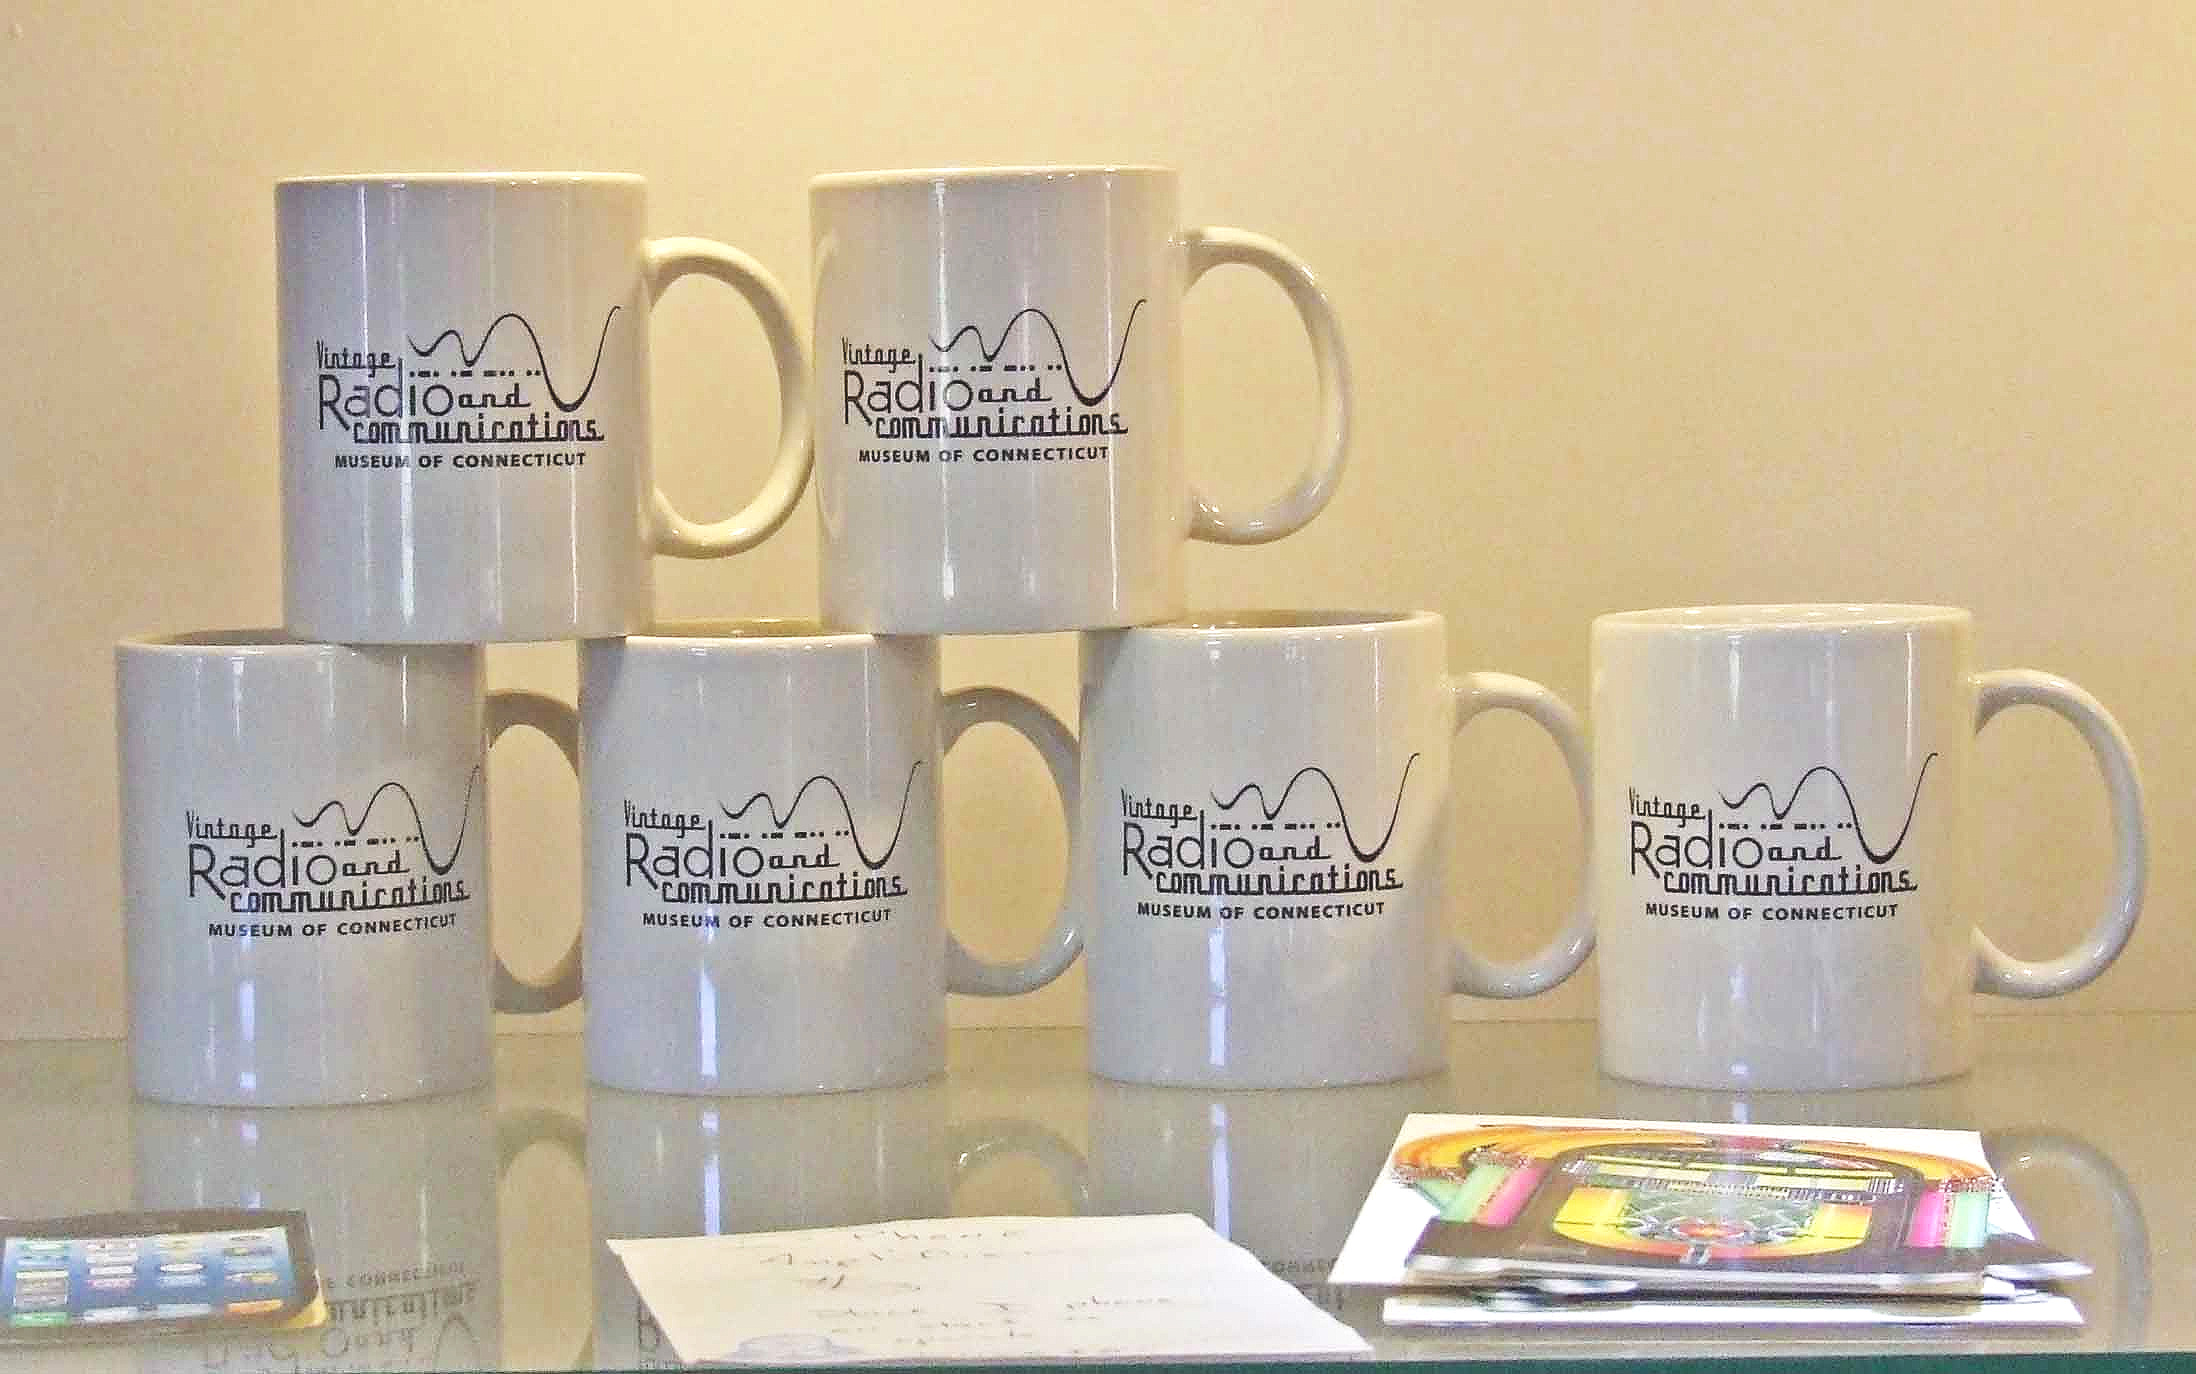 Mugs - Enjoy a mug of coffee or tea…Mugs have museum logo and are dishwasher safe!$5 each